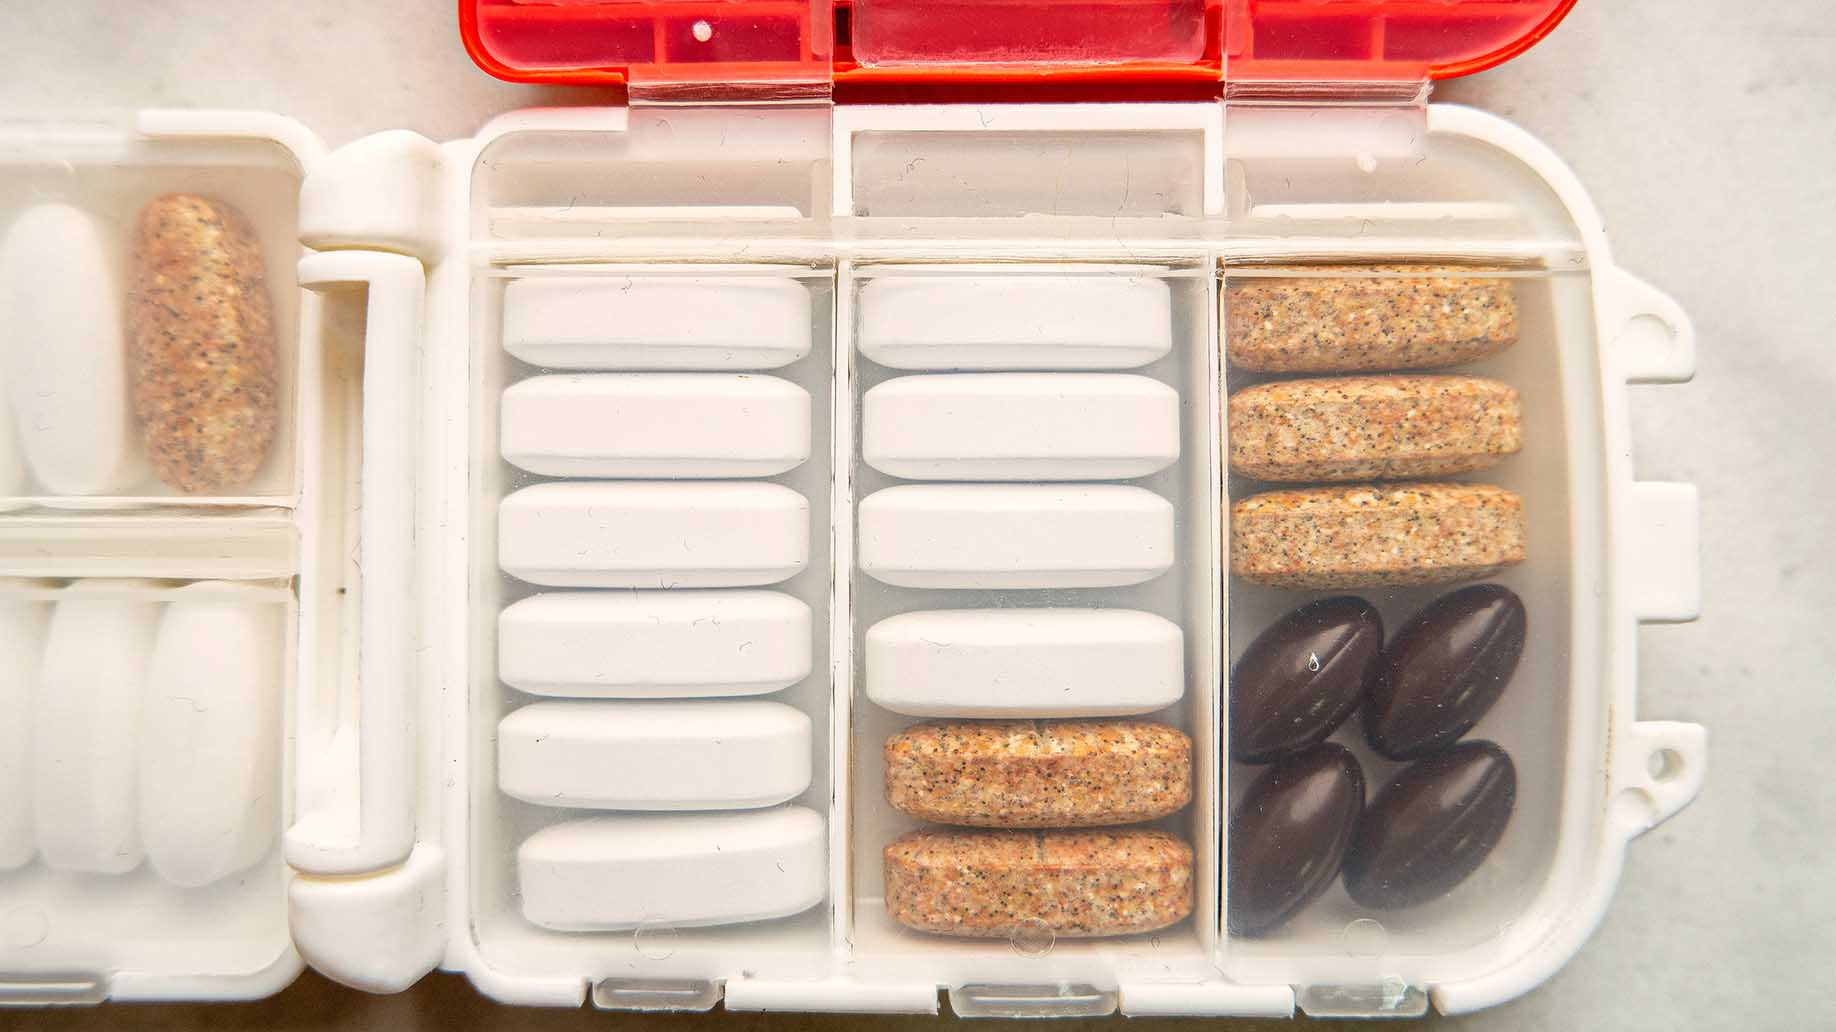 container with pills used for traveling